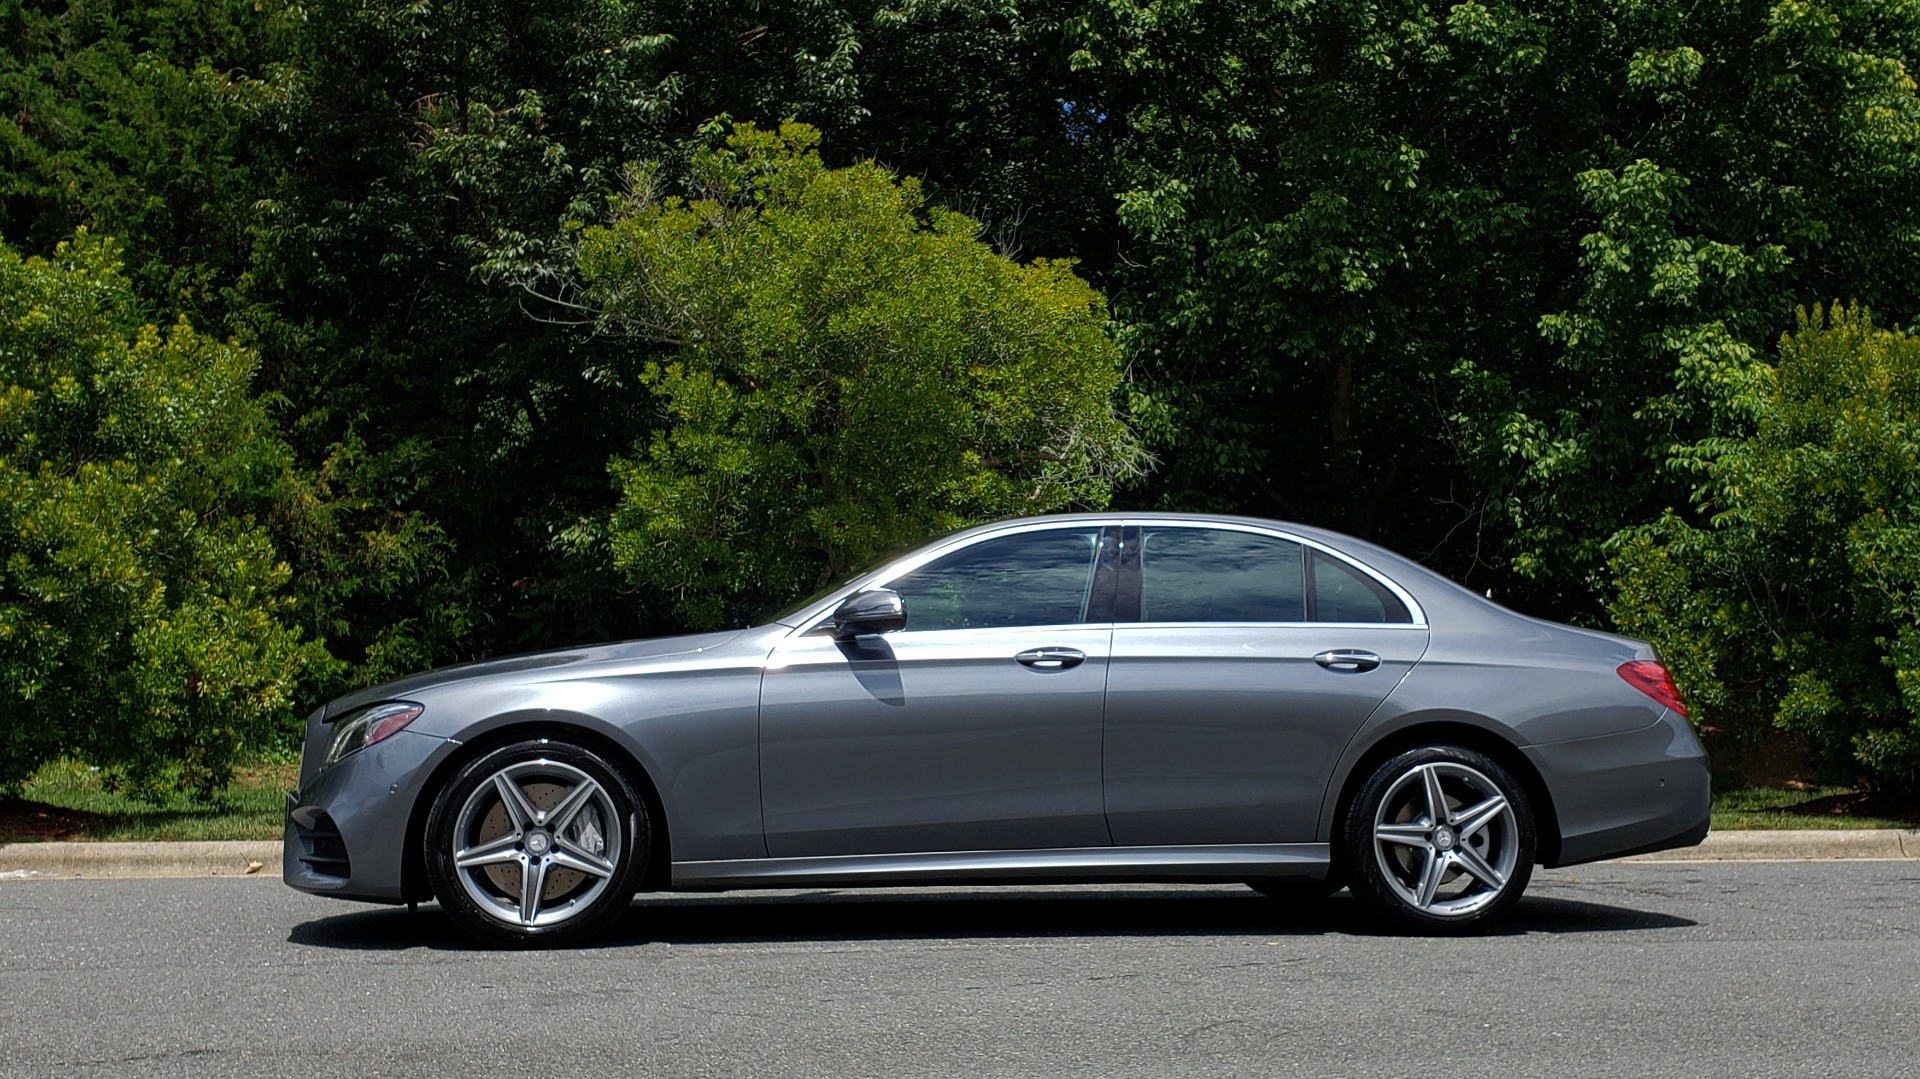 Used 2017 Mercedes-Benz E-CLASS E 300 SPORT 4MATIC / PREM PKG / NAV / SUNROOF / BURMESTER SND / REARVIEW for sale Sold at Formula Imports in Charlotte NC 28227 2